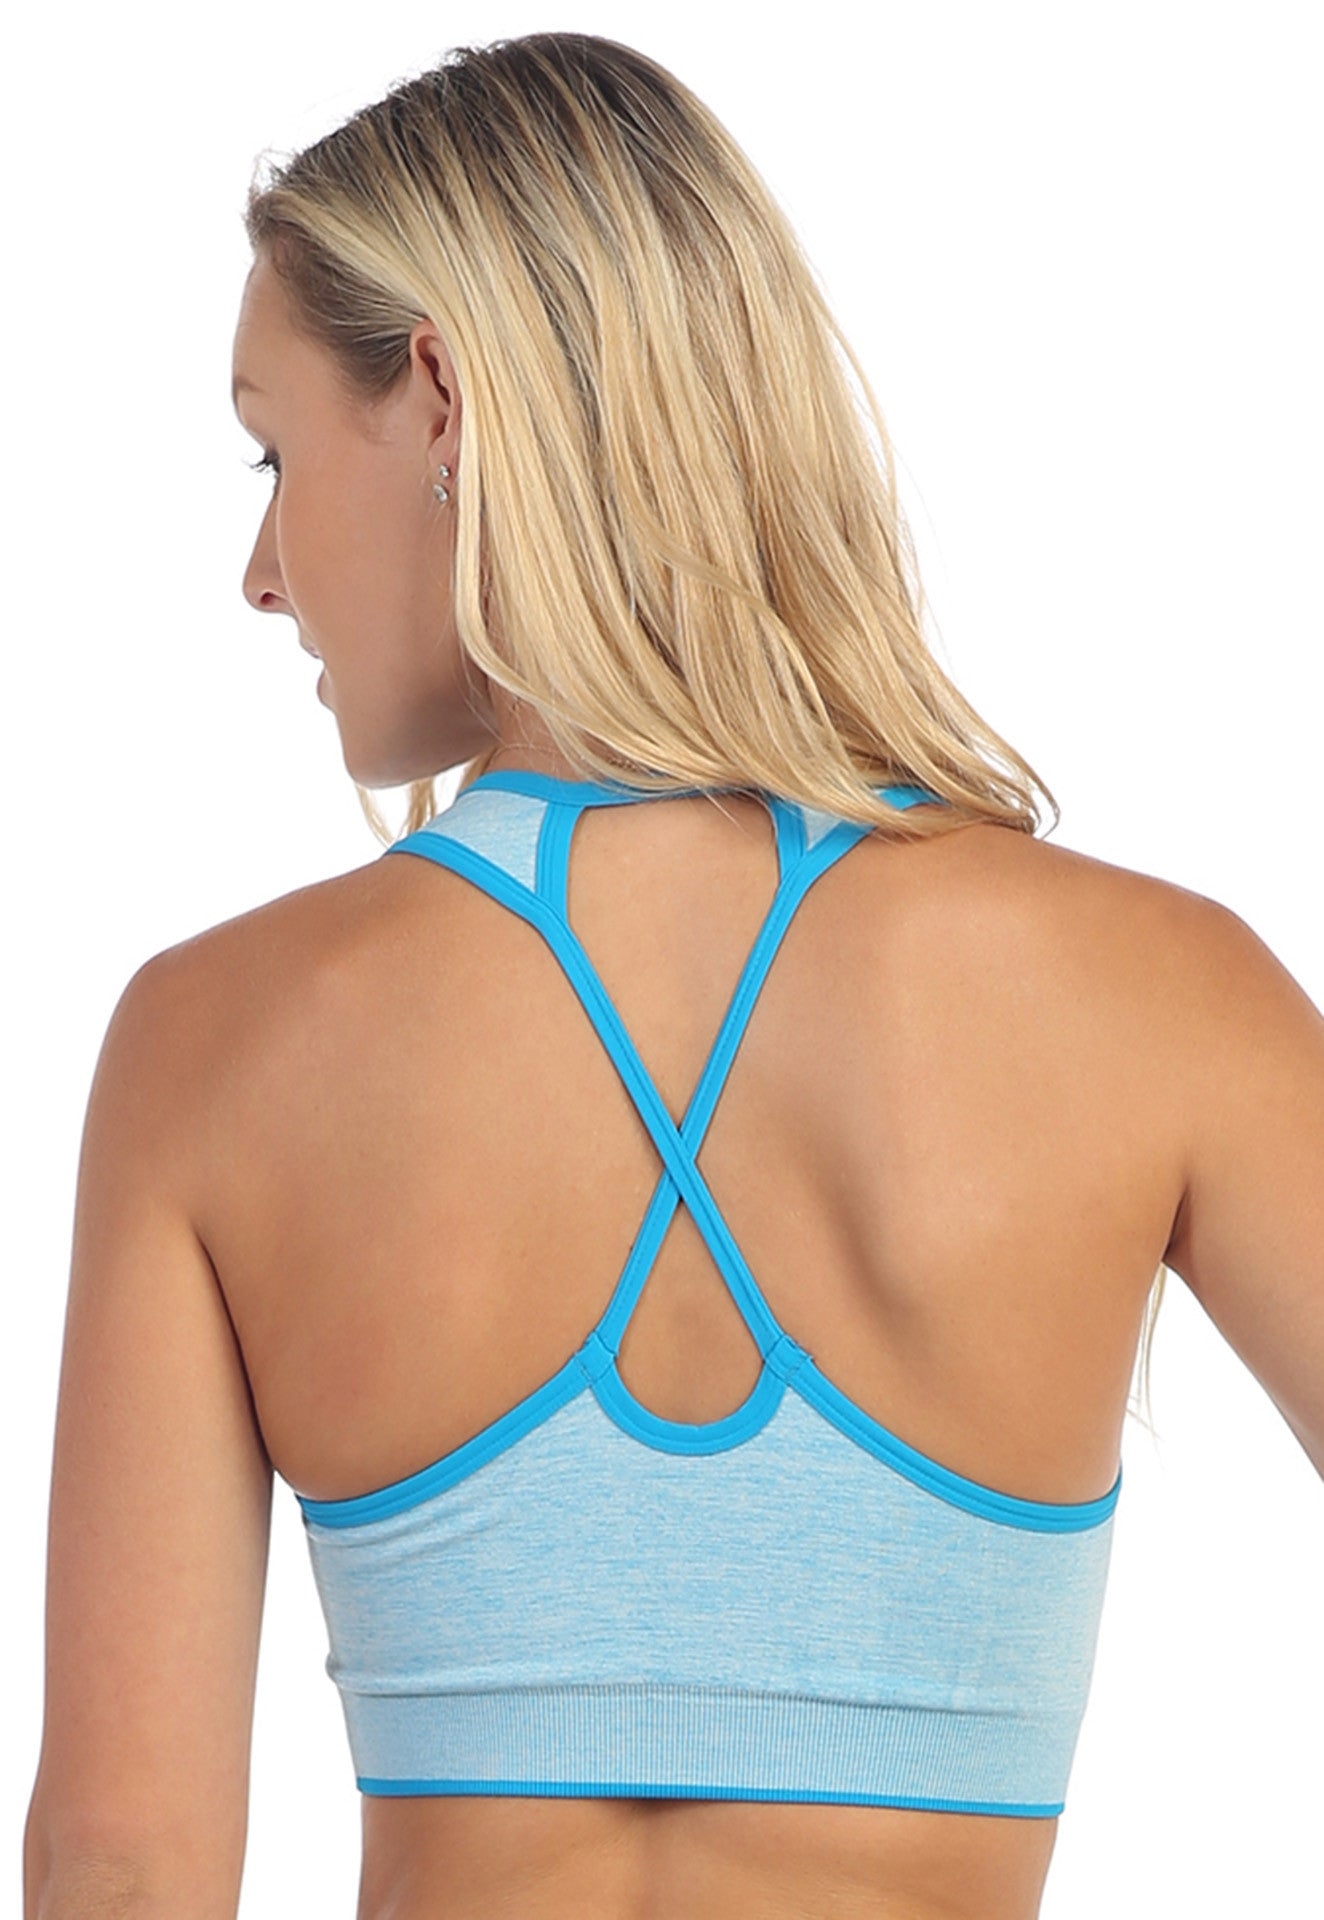 Best Sports Bra Ever: Heather Racerback 96